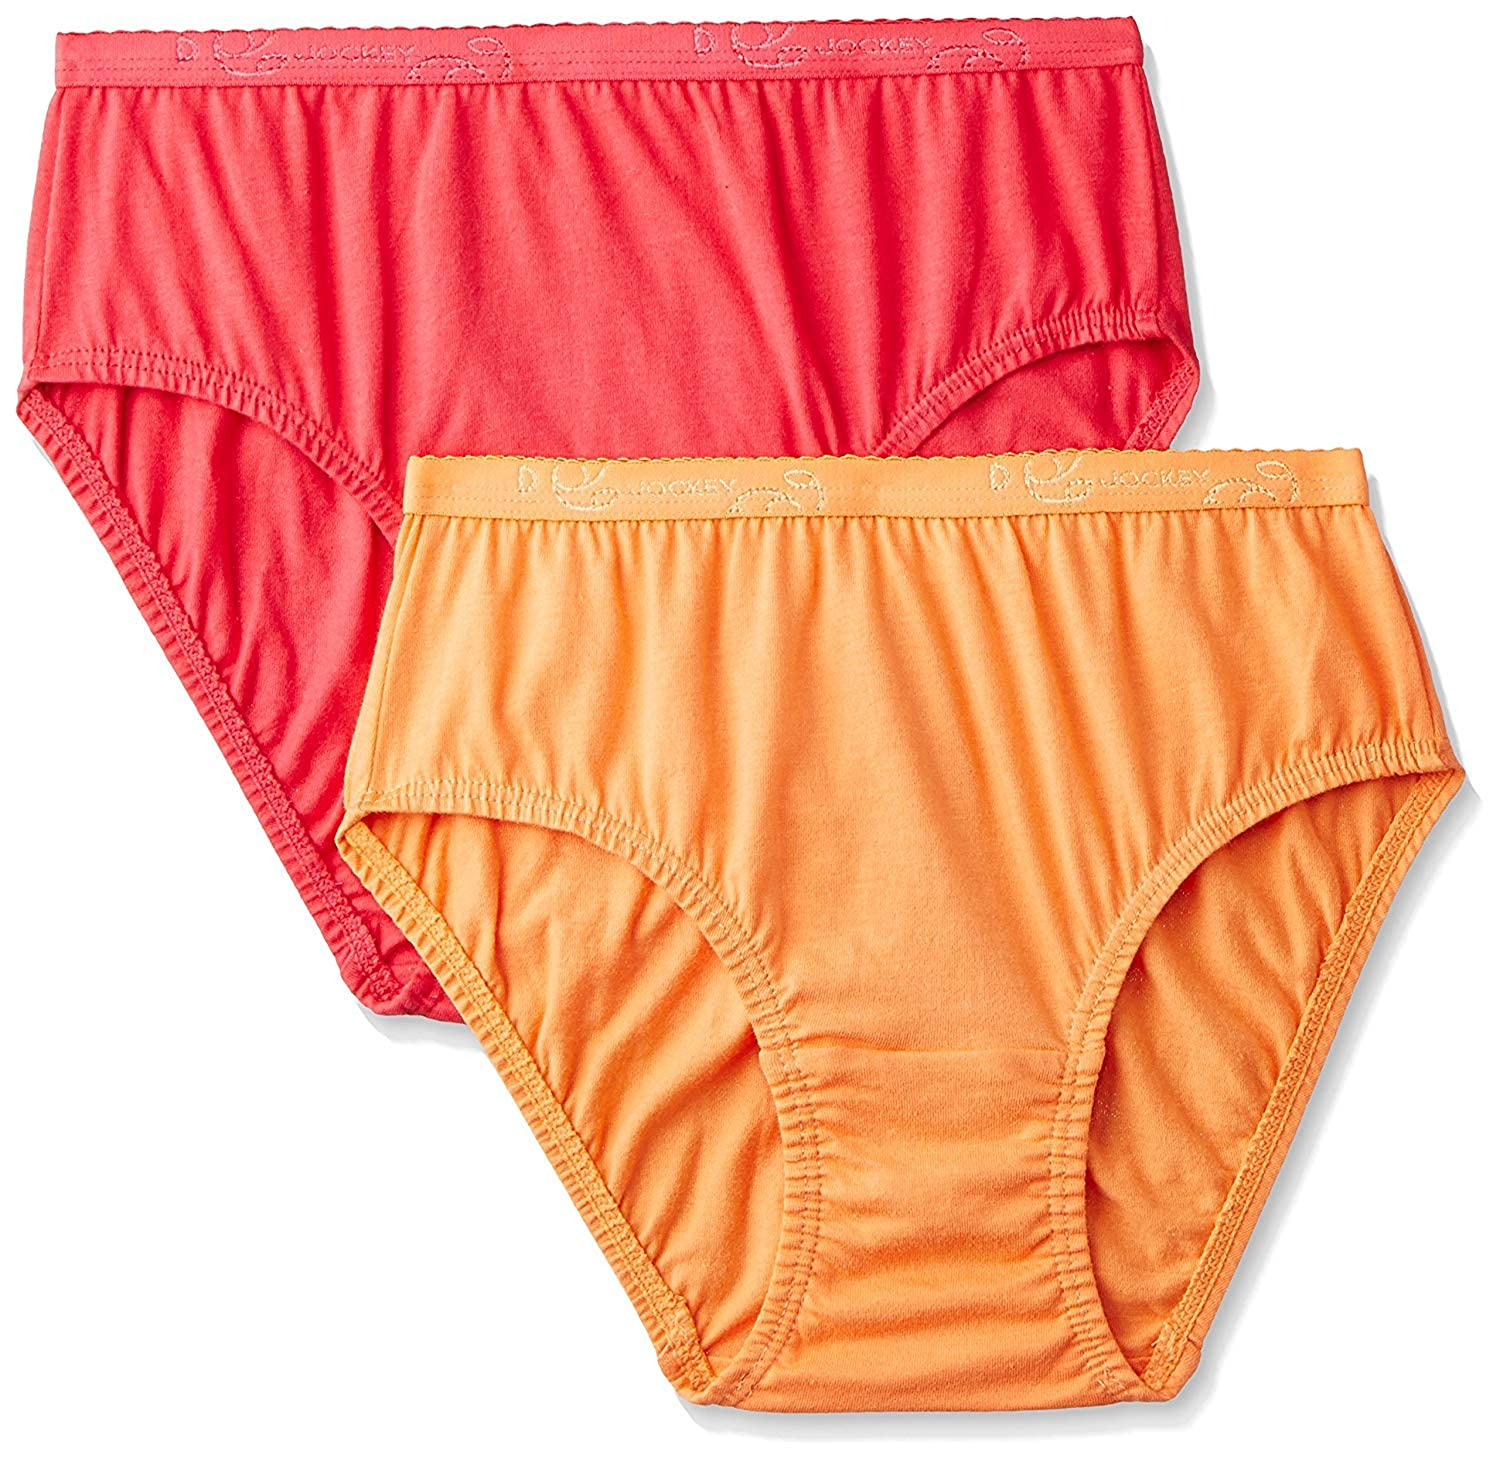 Pack of 2 Colors may vary Jockey Women/'s Cotton Hipster Panties Dark Color